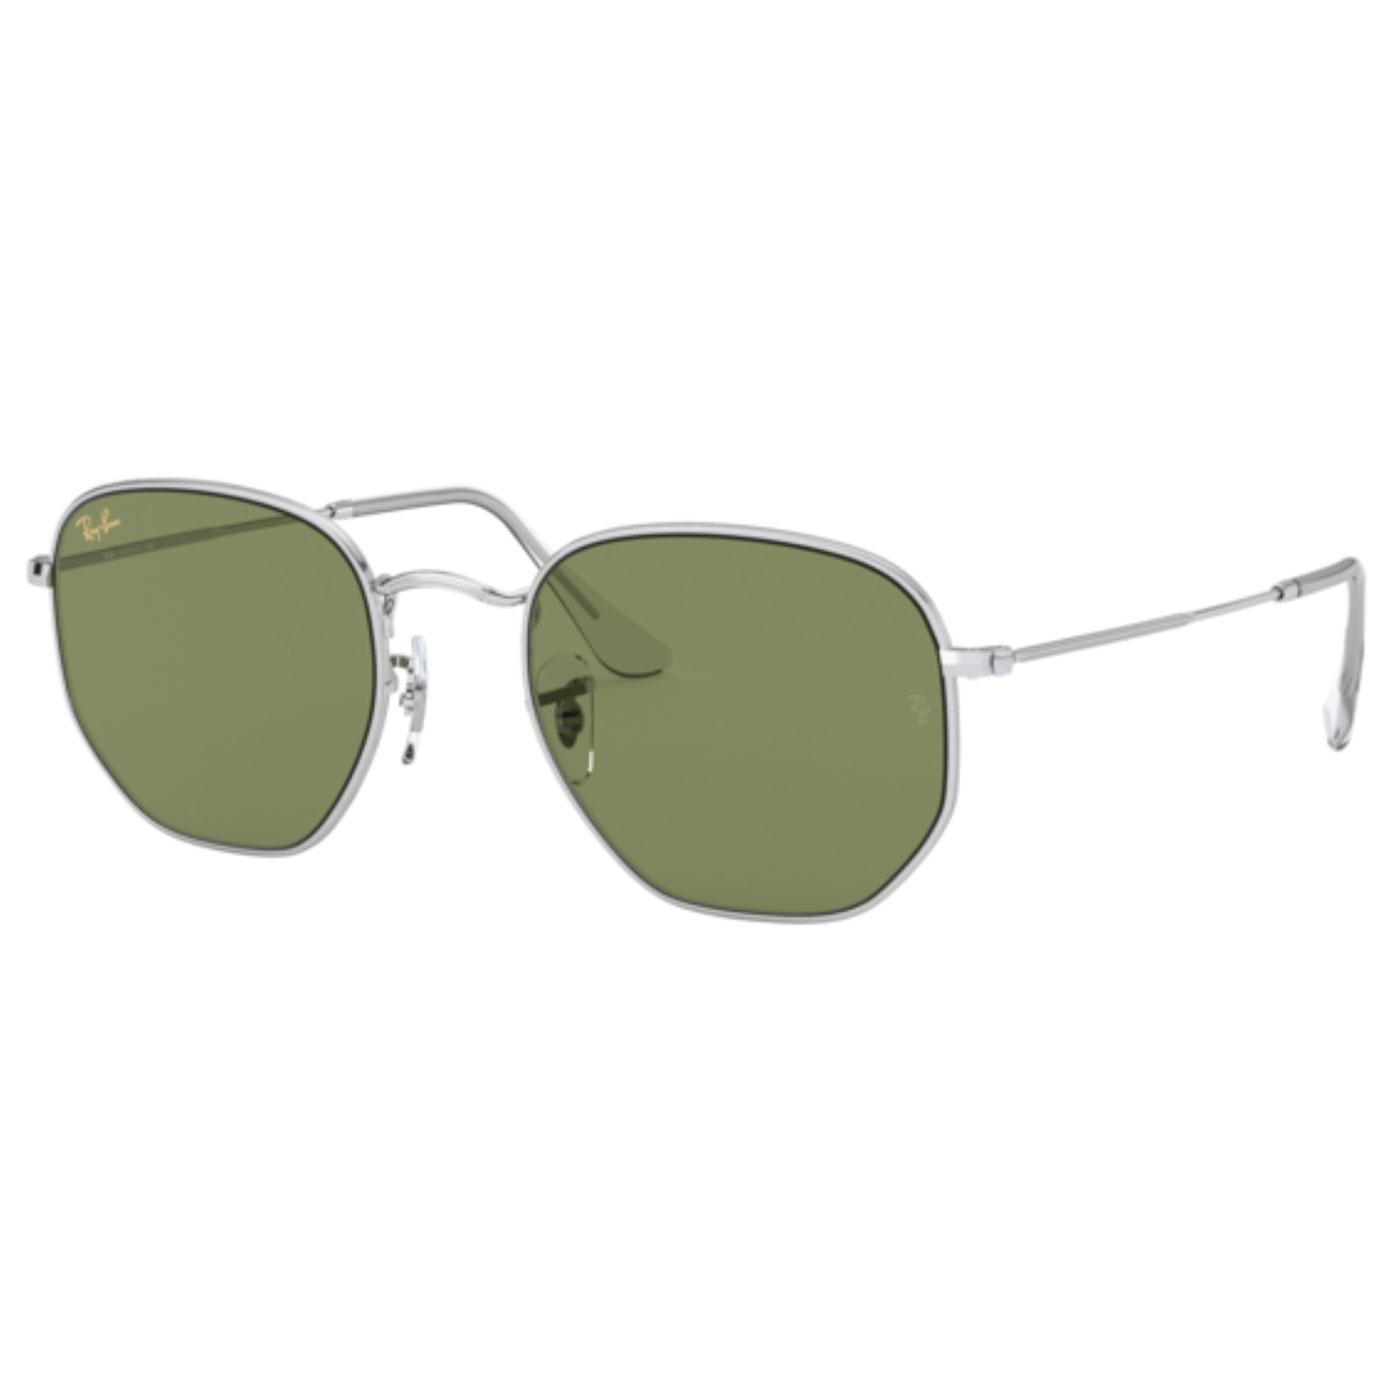 RAY-BAN RB3548 Hexagon Sunglasses (Silver/Green)